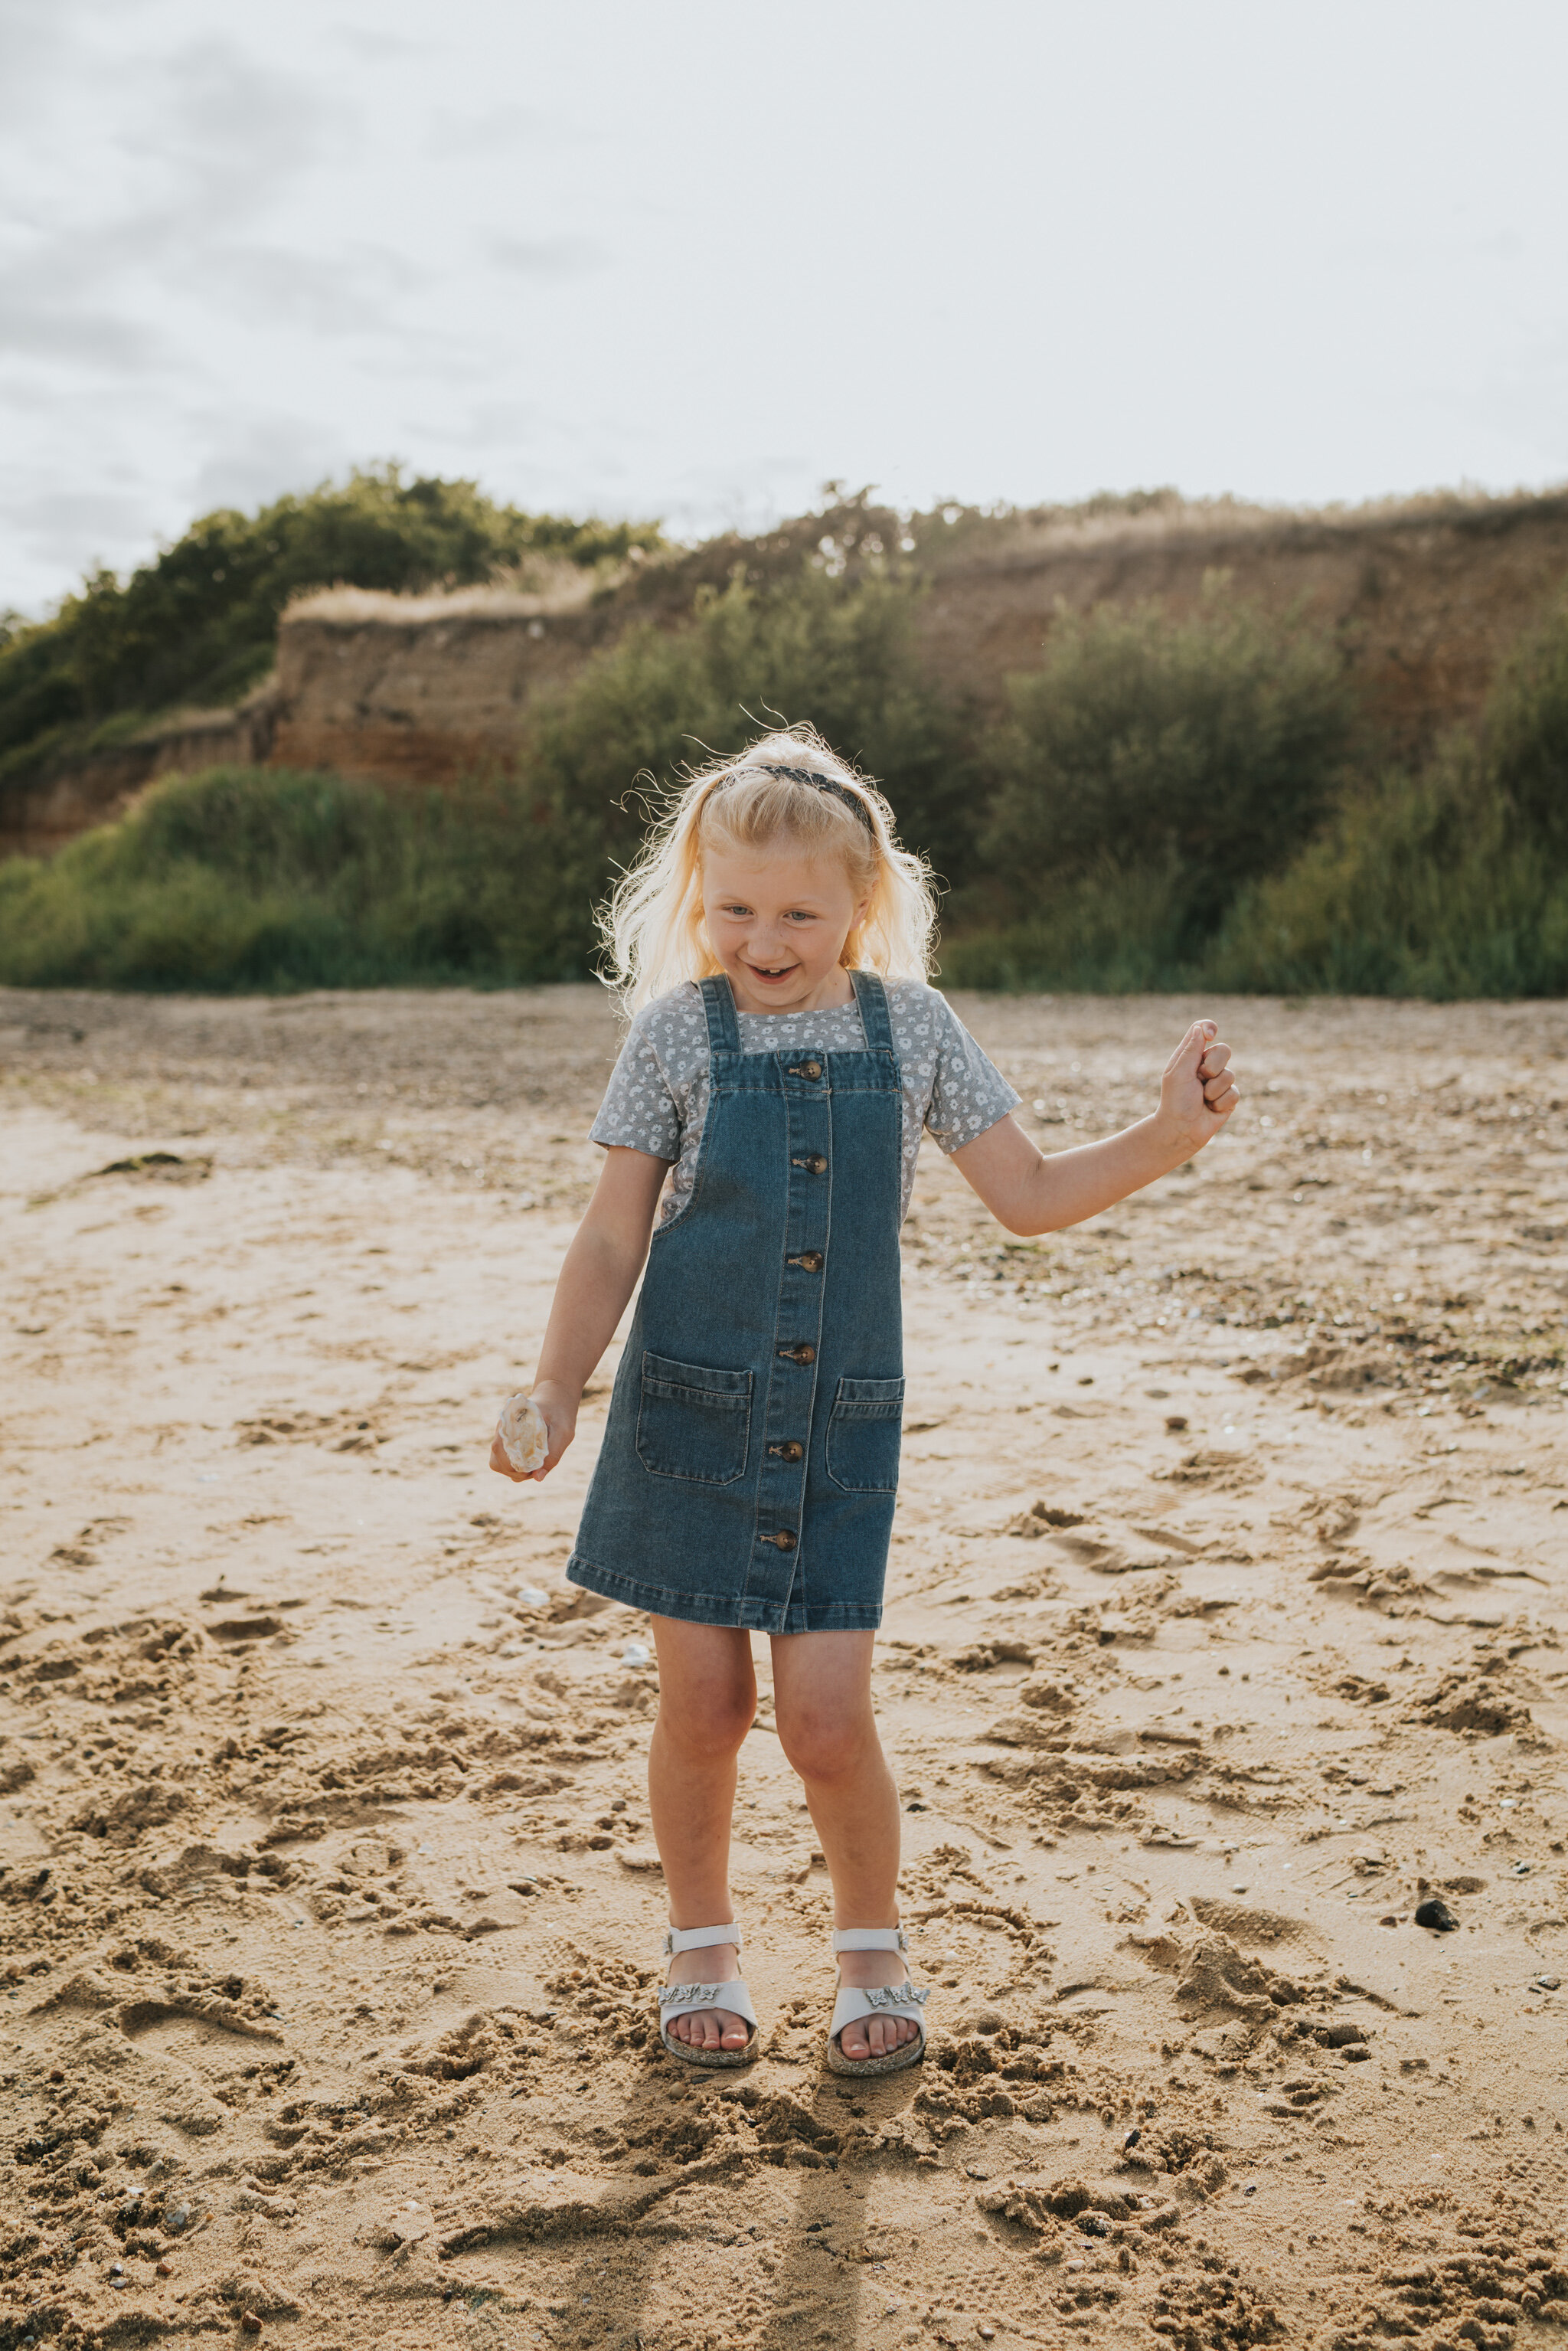 celebratory-beach-family-session-thomson-family-cudmore-grove-east-mersea-grace-elizabeth-colchester-essex-devon-suffolk-and-norfolk-alternative-wedding-and-family-photographer (43 of 53).jpg